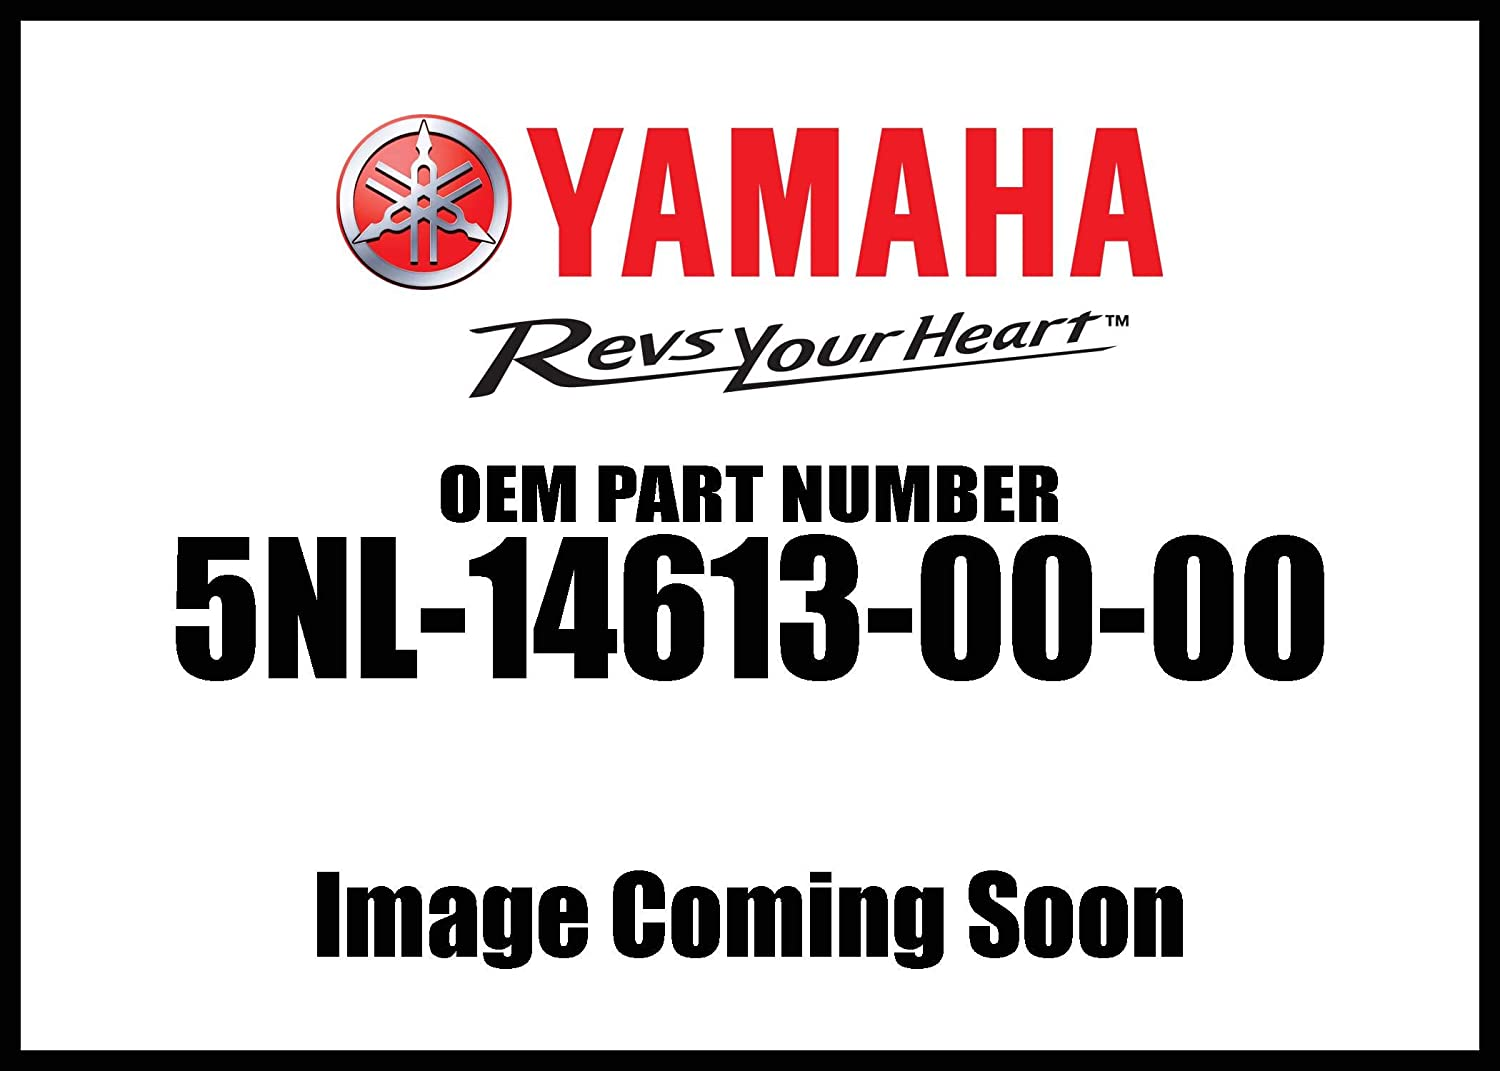 Yamaha 5NL-14613-00-00 Gasket, Exhaust Pipe; ATV Motorcycle Snow Mobile Scooter Parts